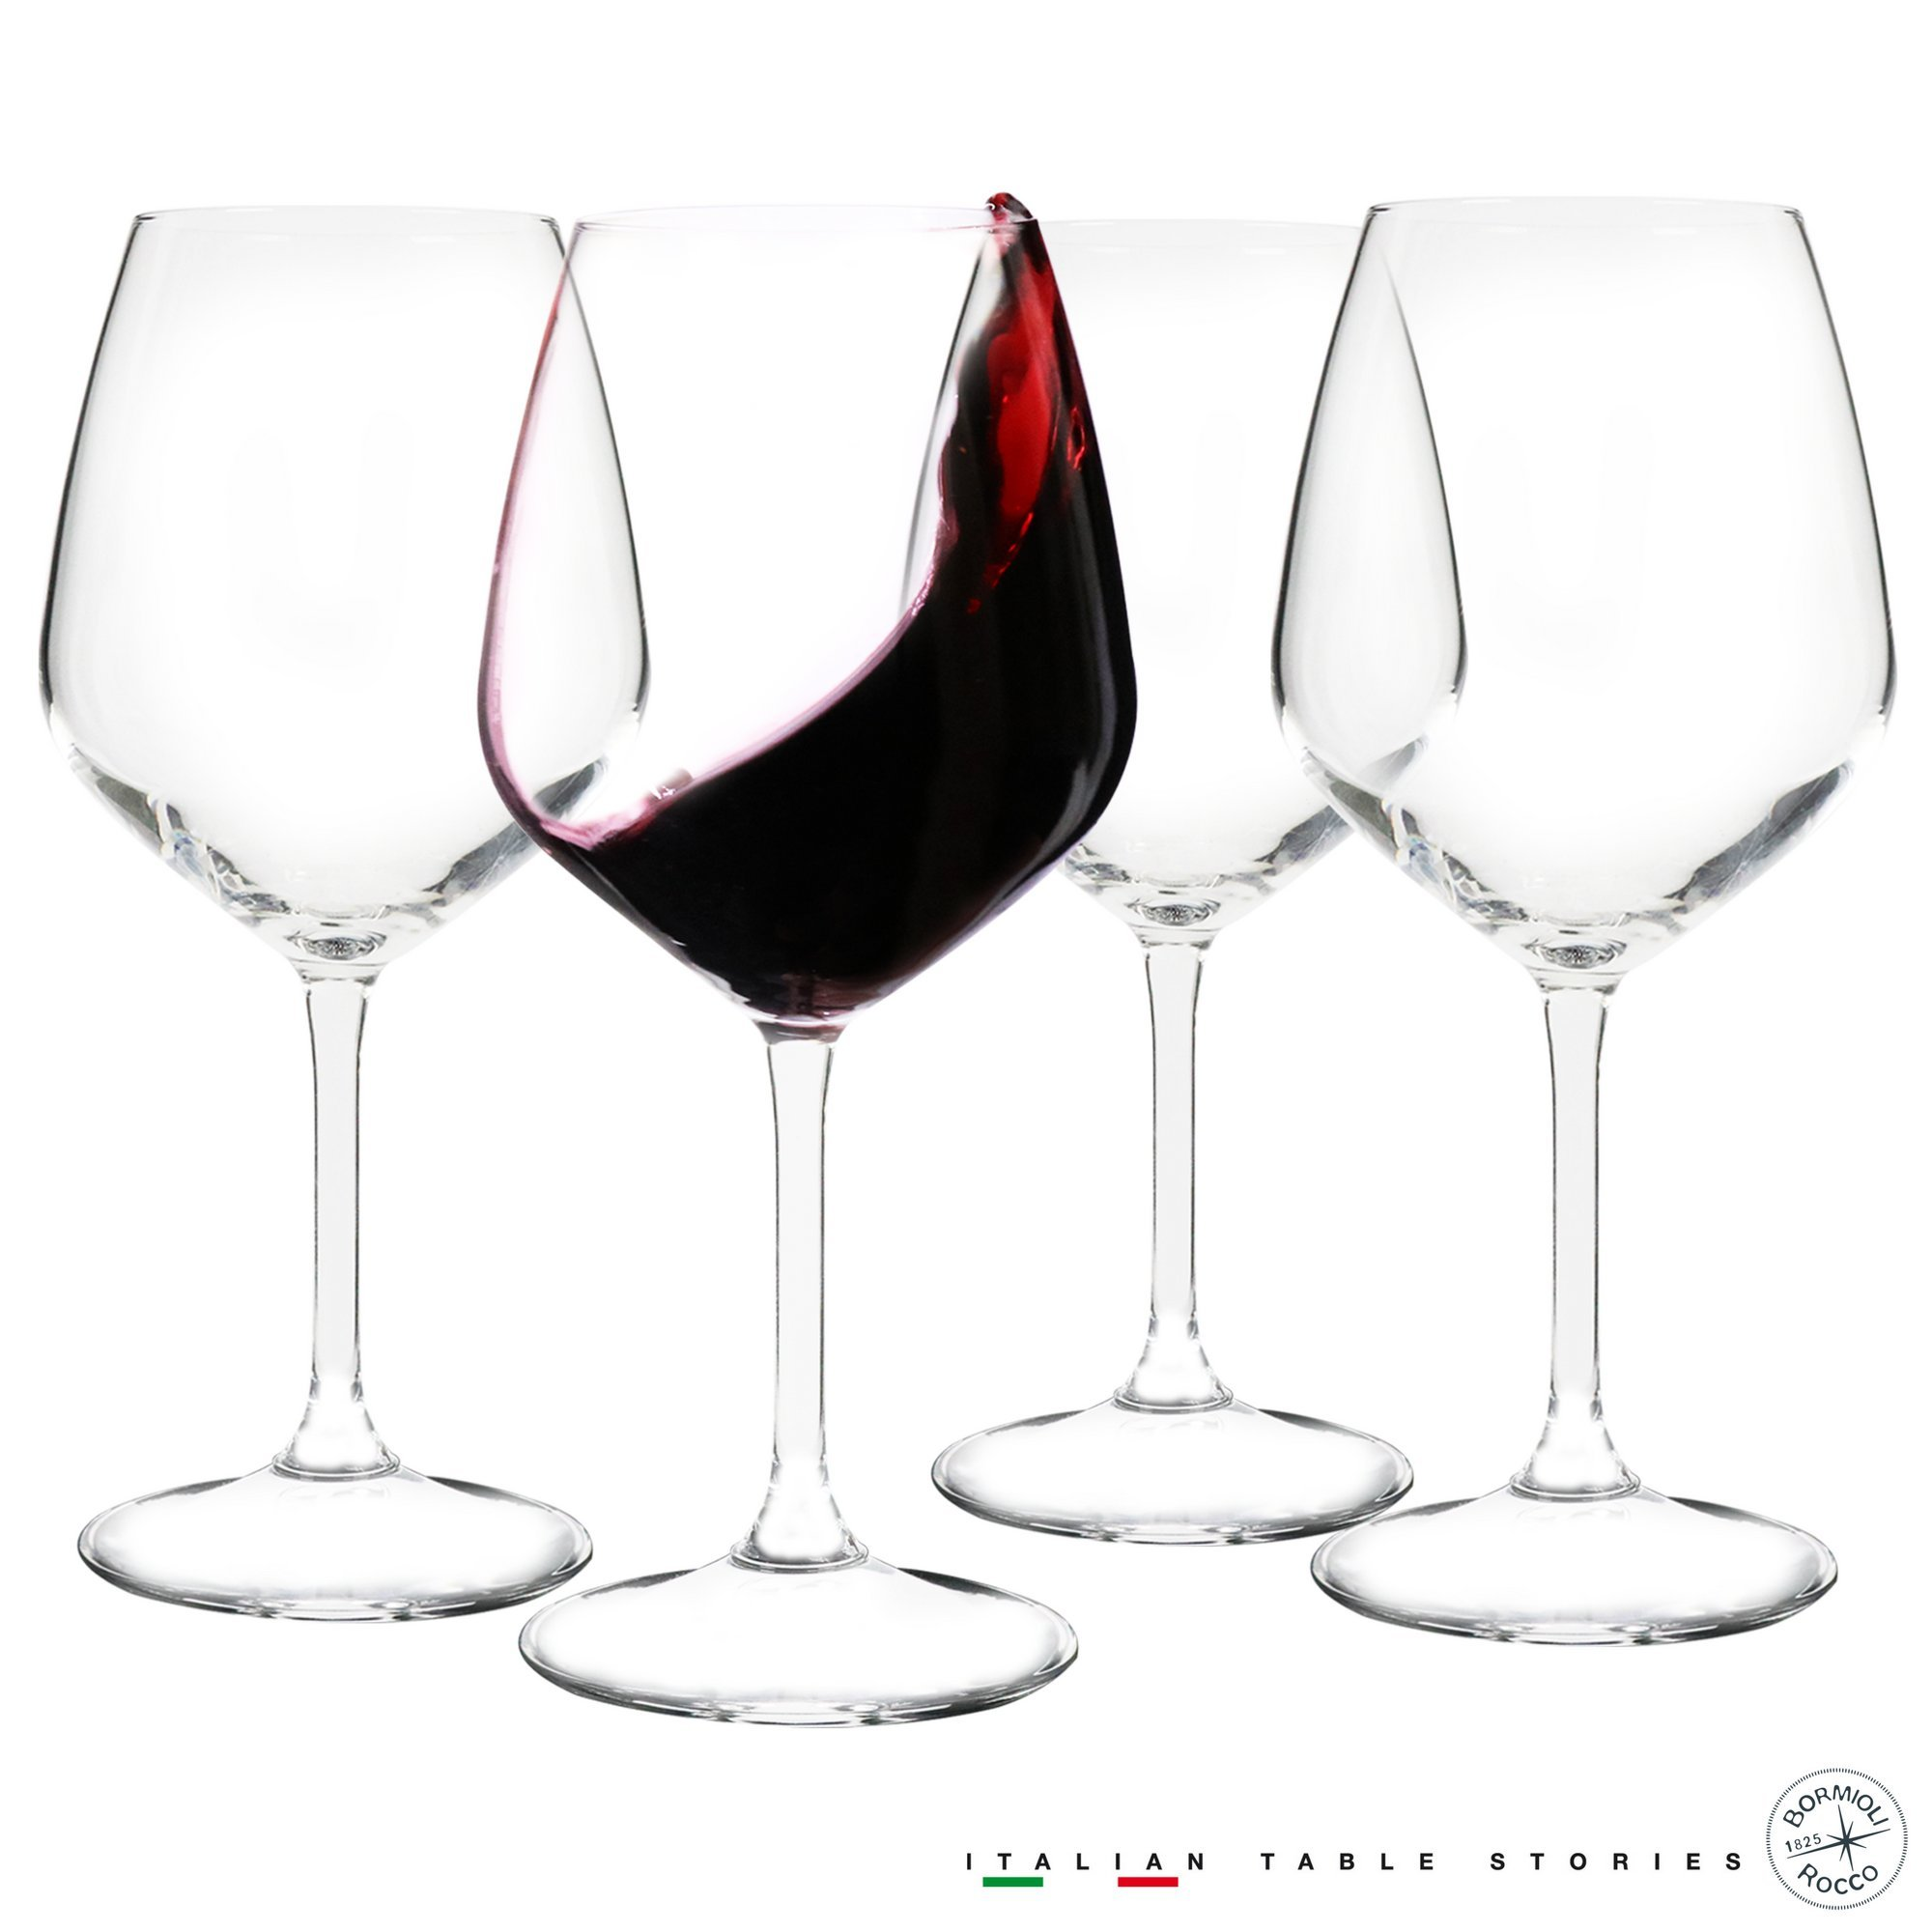 Bormioli Rocco 18oz Red Wine Glasses (Set Of 4): Crystal Clear Star Glass, Laser Cut Rim For Wine Tasting, Lead-Free Cups, Elegant Party Drinking Glassware, Dishwasher Safe, Restaurant Quality by Bormioli Rocco (Image #5)